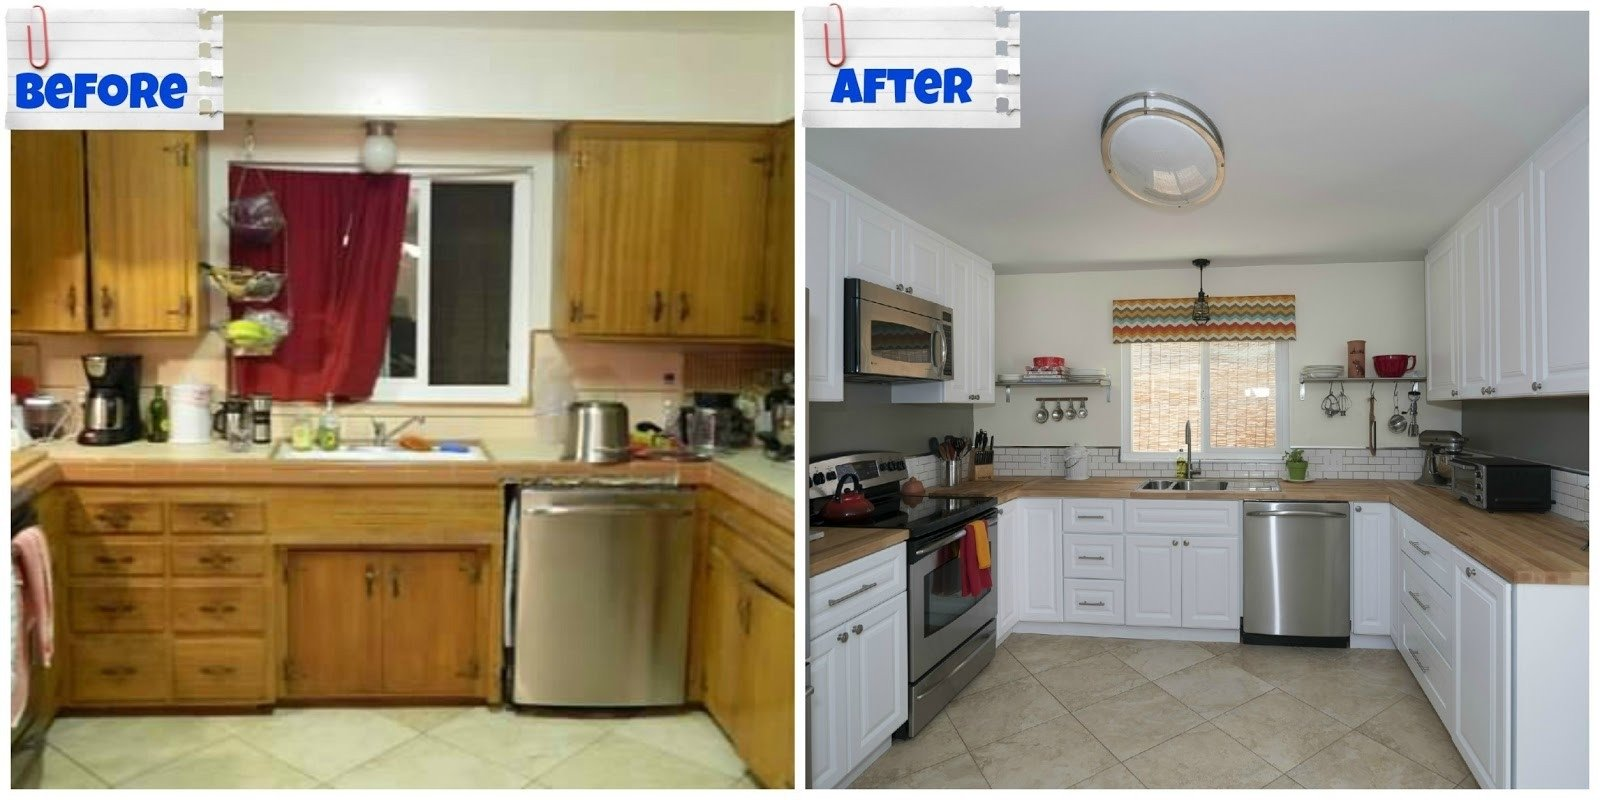 diy kitchen remodel on a budget: remodeling your kitchen in a cheap way